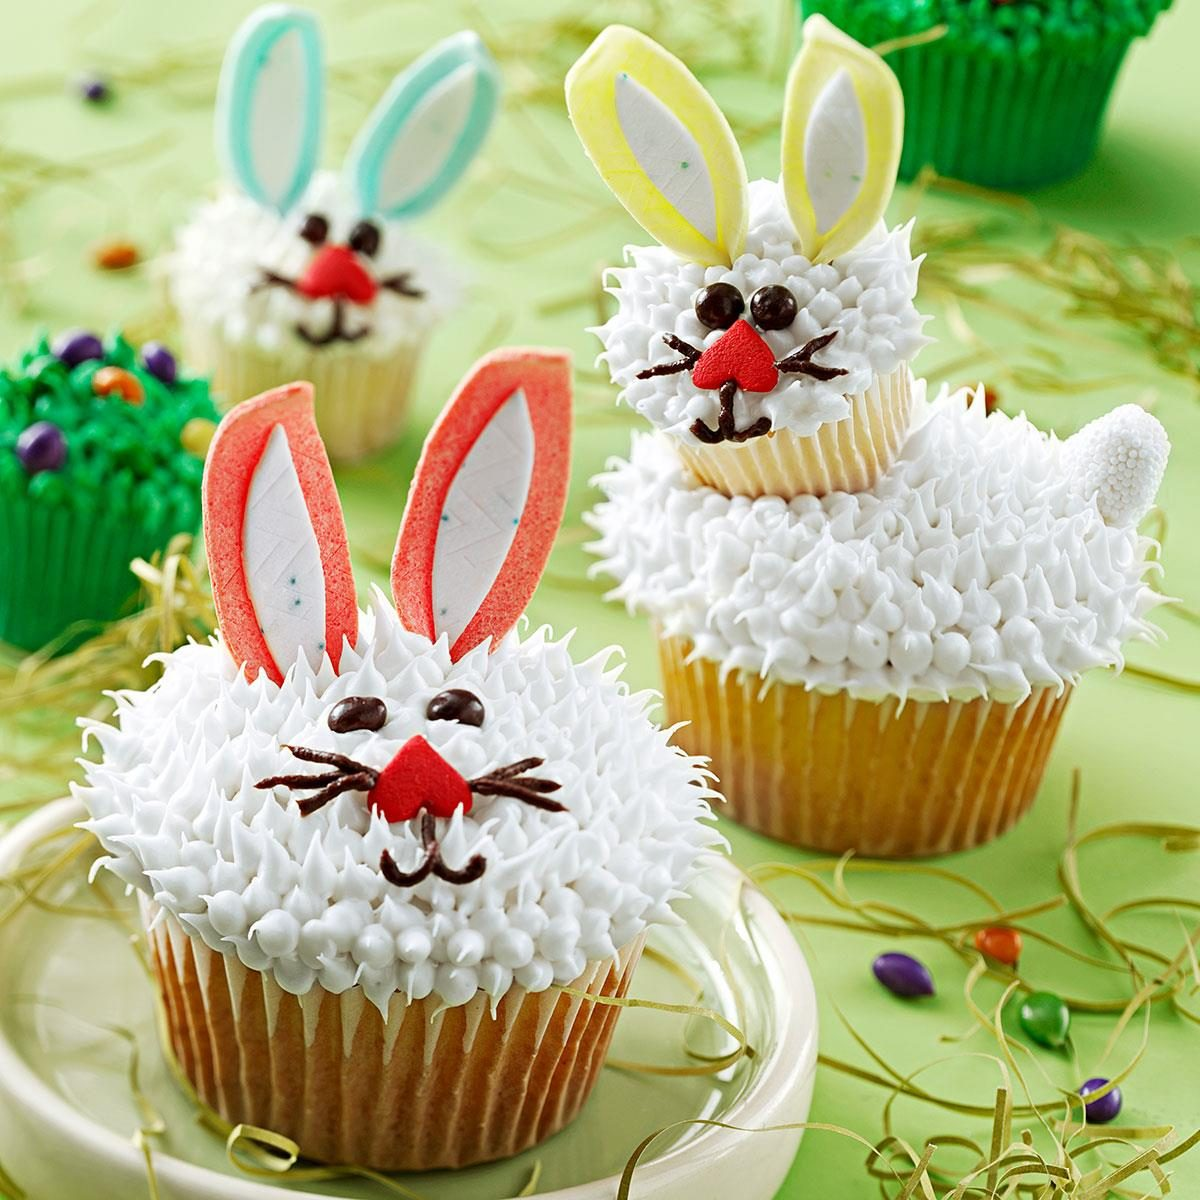 Easter Baking Cupcakes